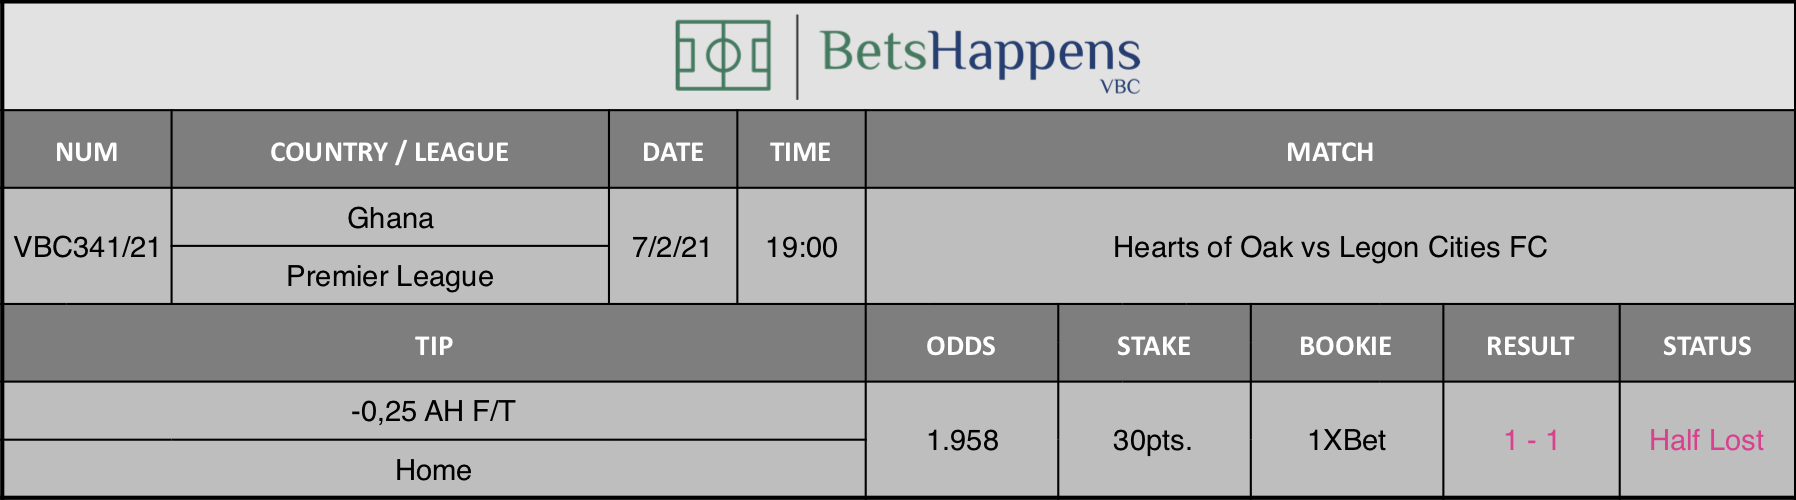 Results of our tip for the Hearts of Oak vs Legon Cities FC match where -0,25 AH F/T Home is recommended.